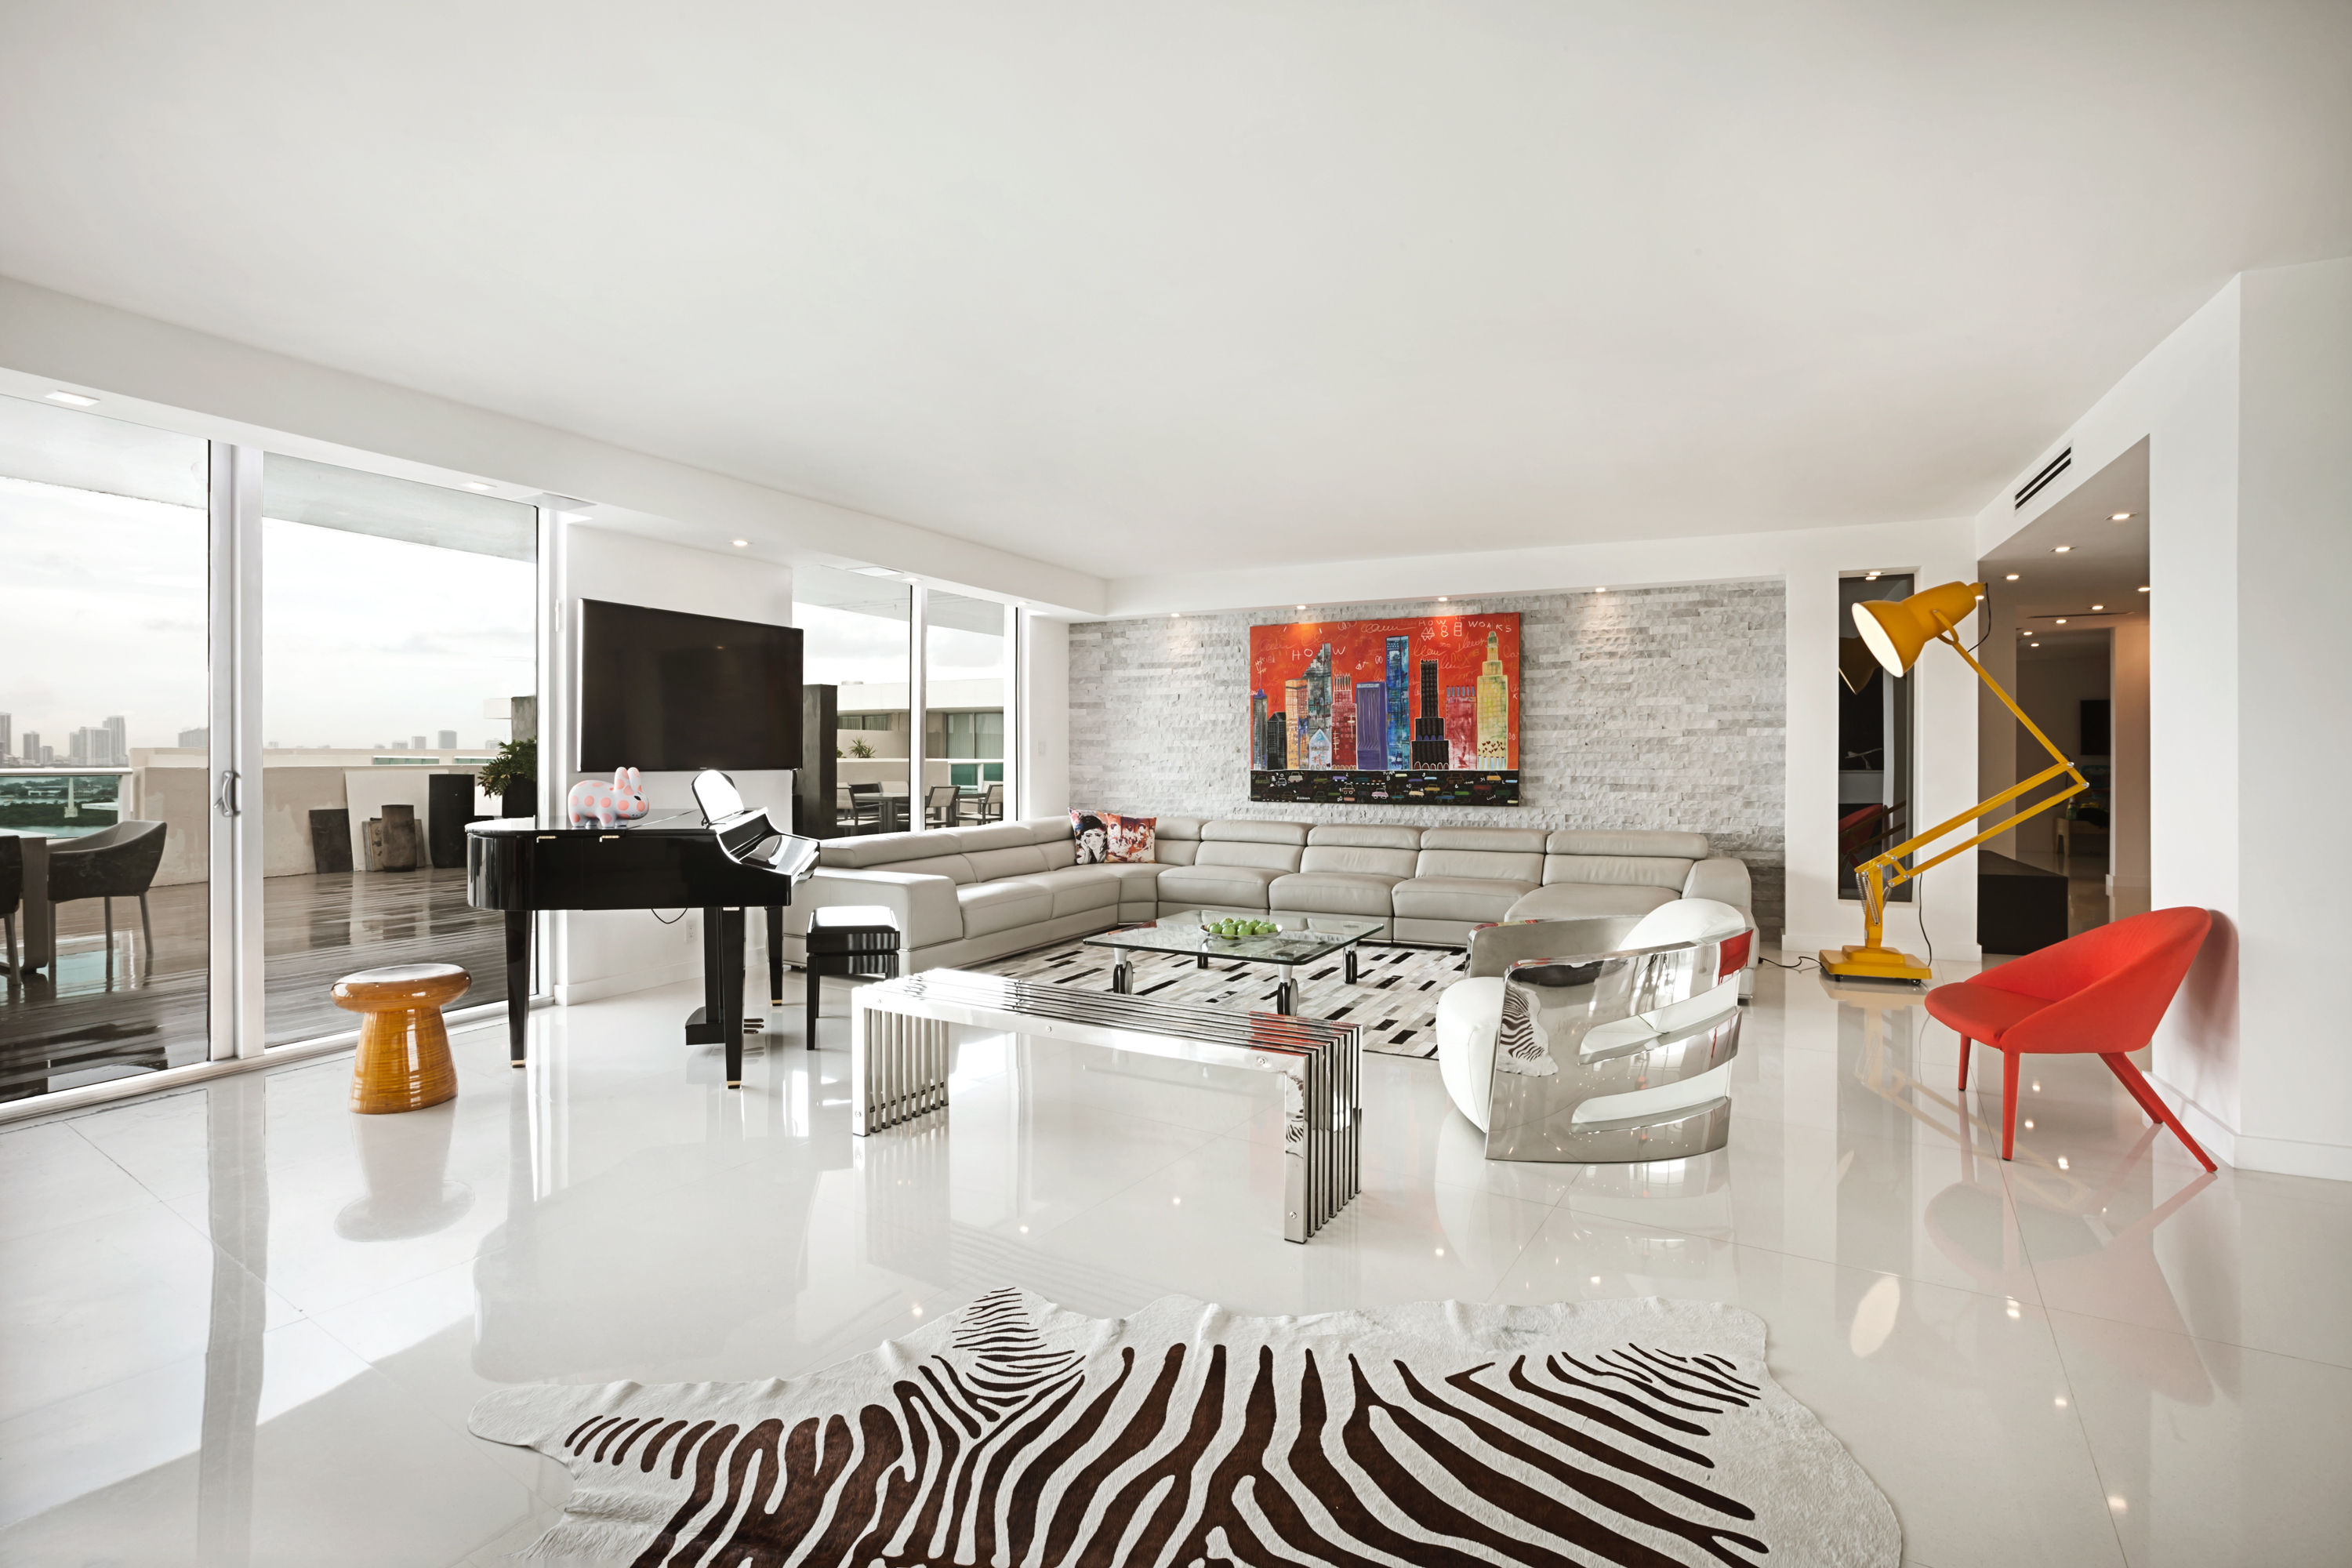 Ultimate Penthouse in the heart of South Beach for sale or rent!